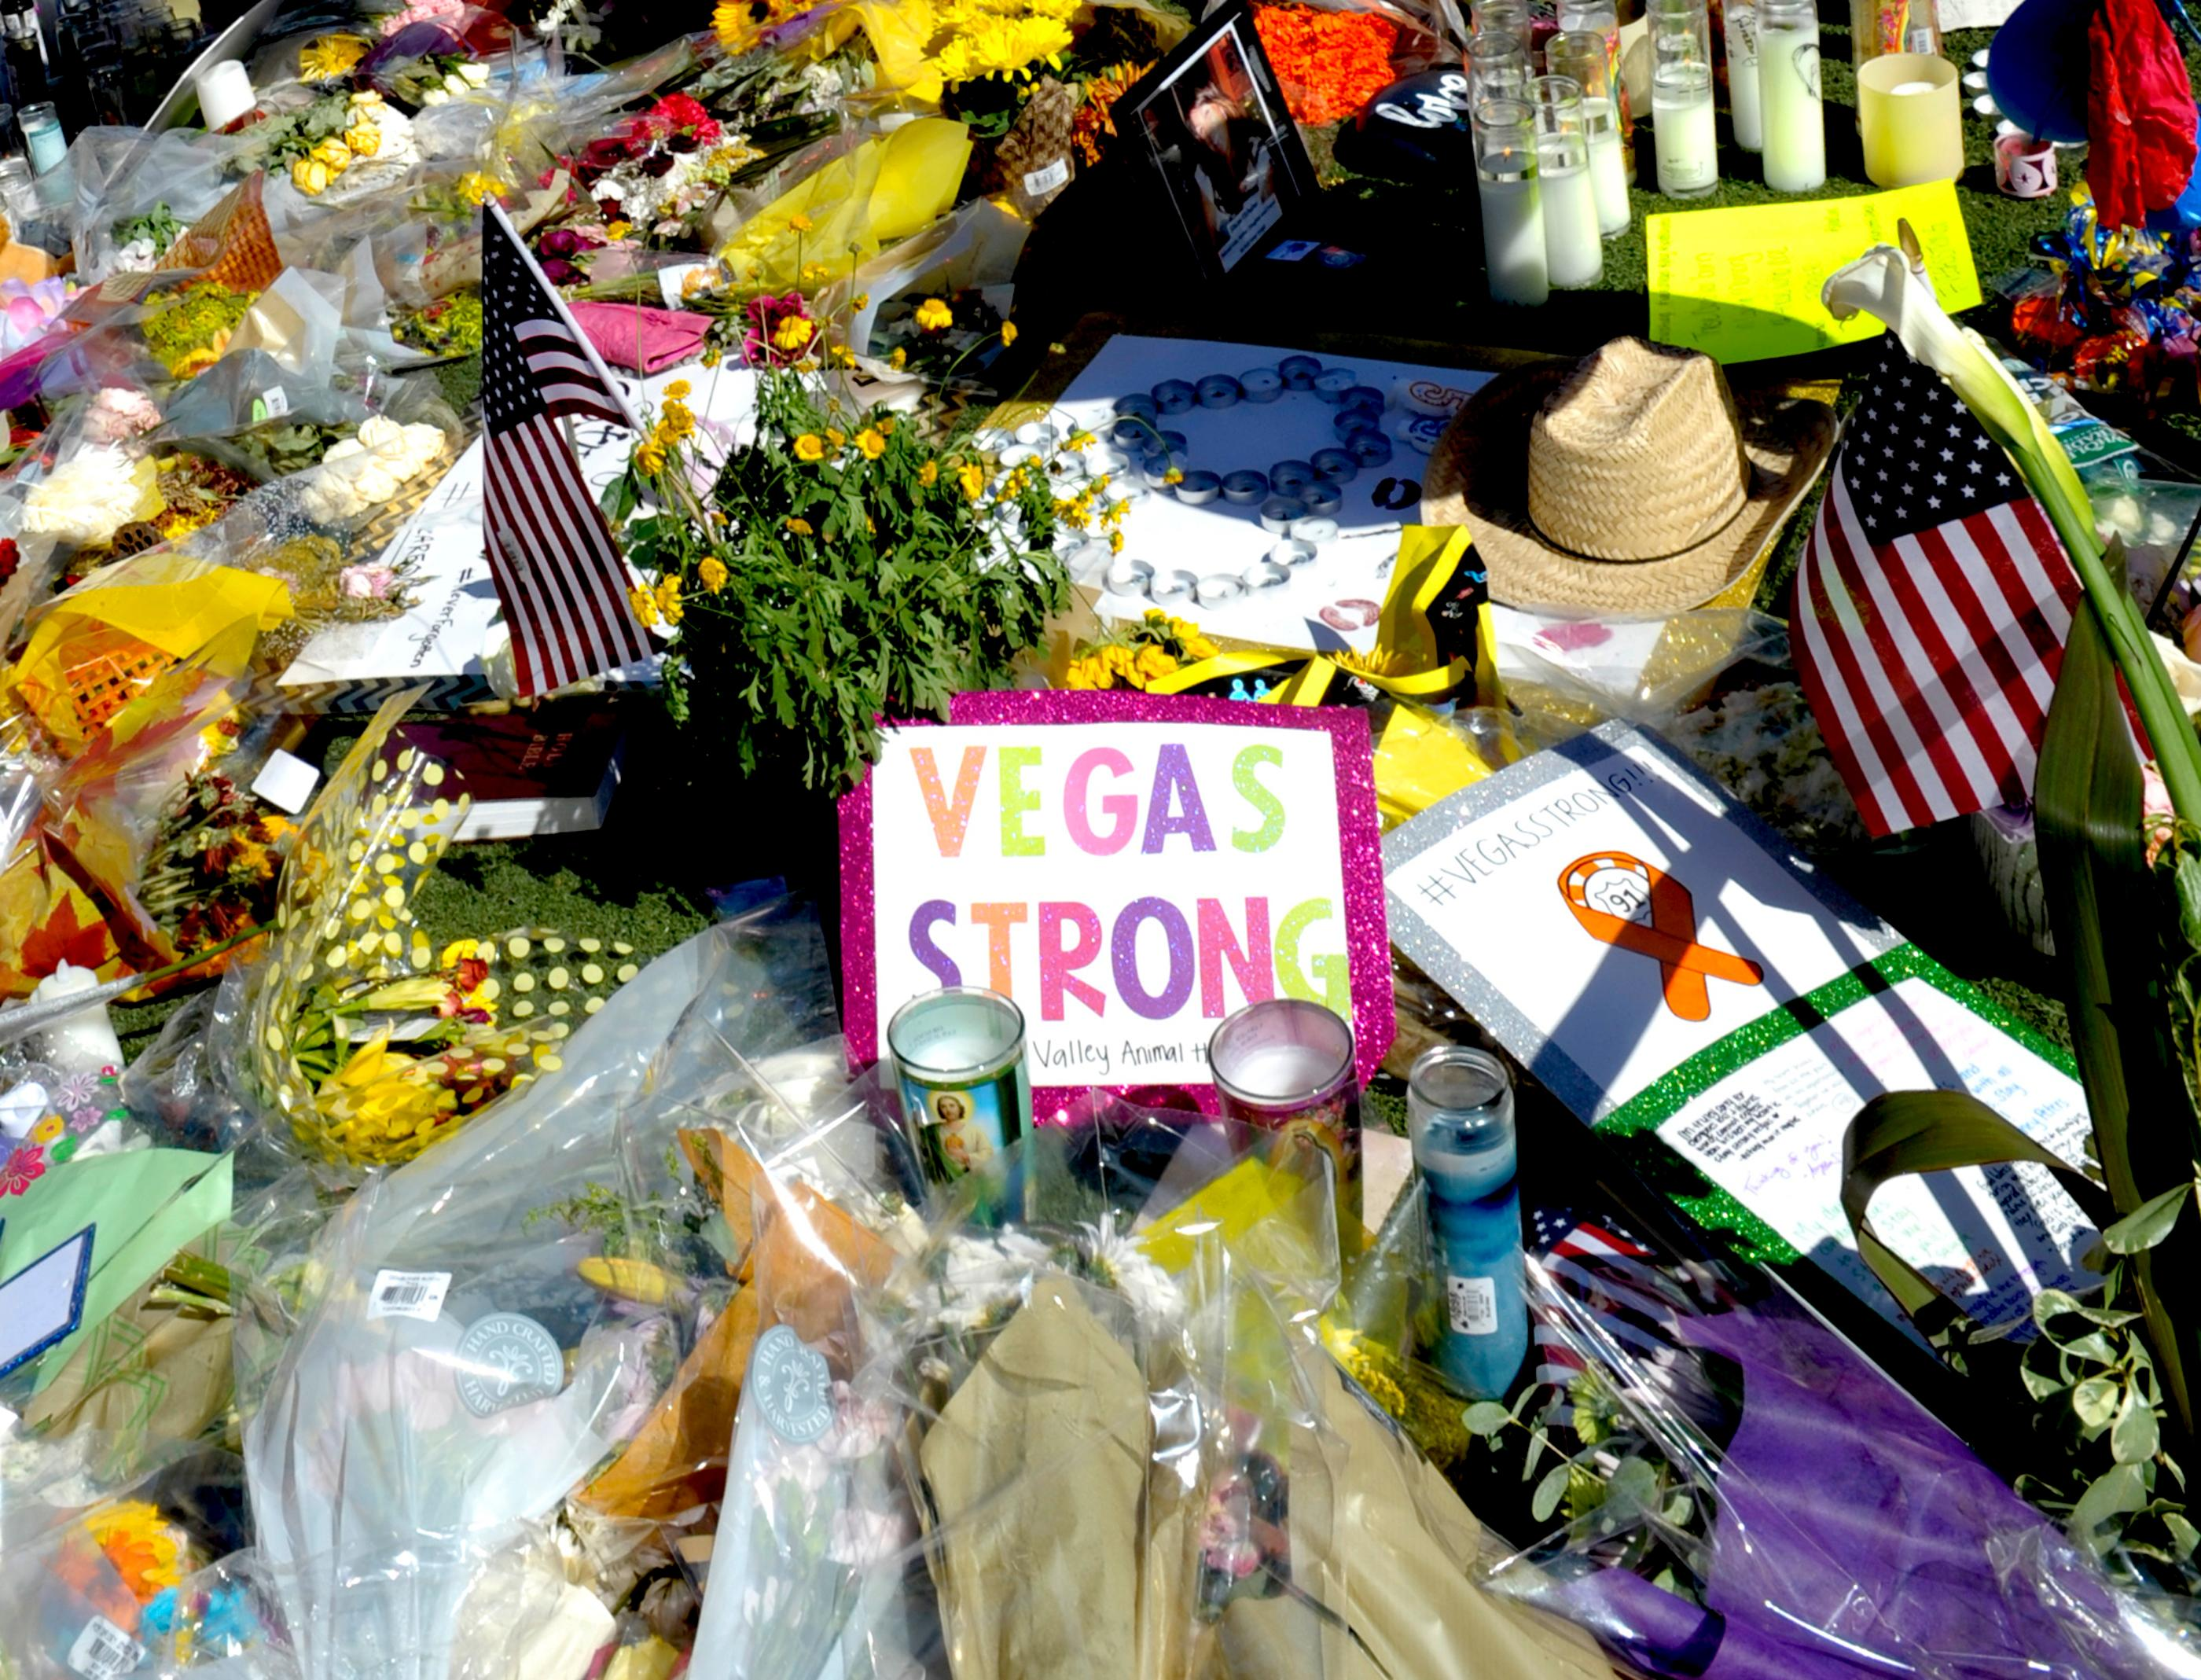 Las Vegas pays tribute to the victims of the Route 91 shootings Thursday, October 5, 2017. CREDIT: Glenn Pinkerton/Las Vegas News Bureau